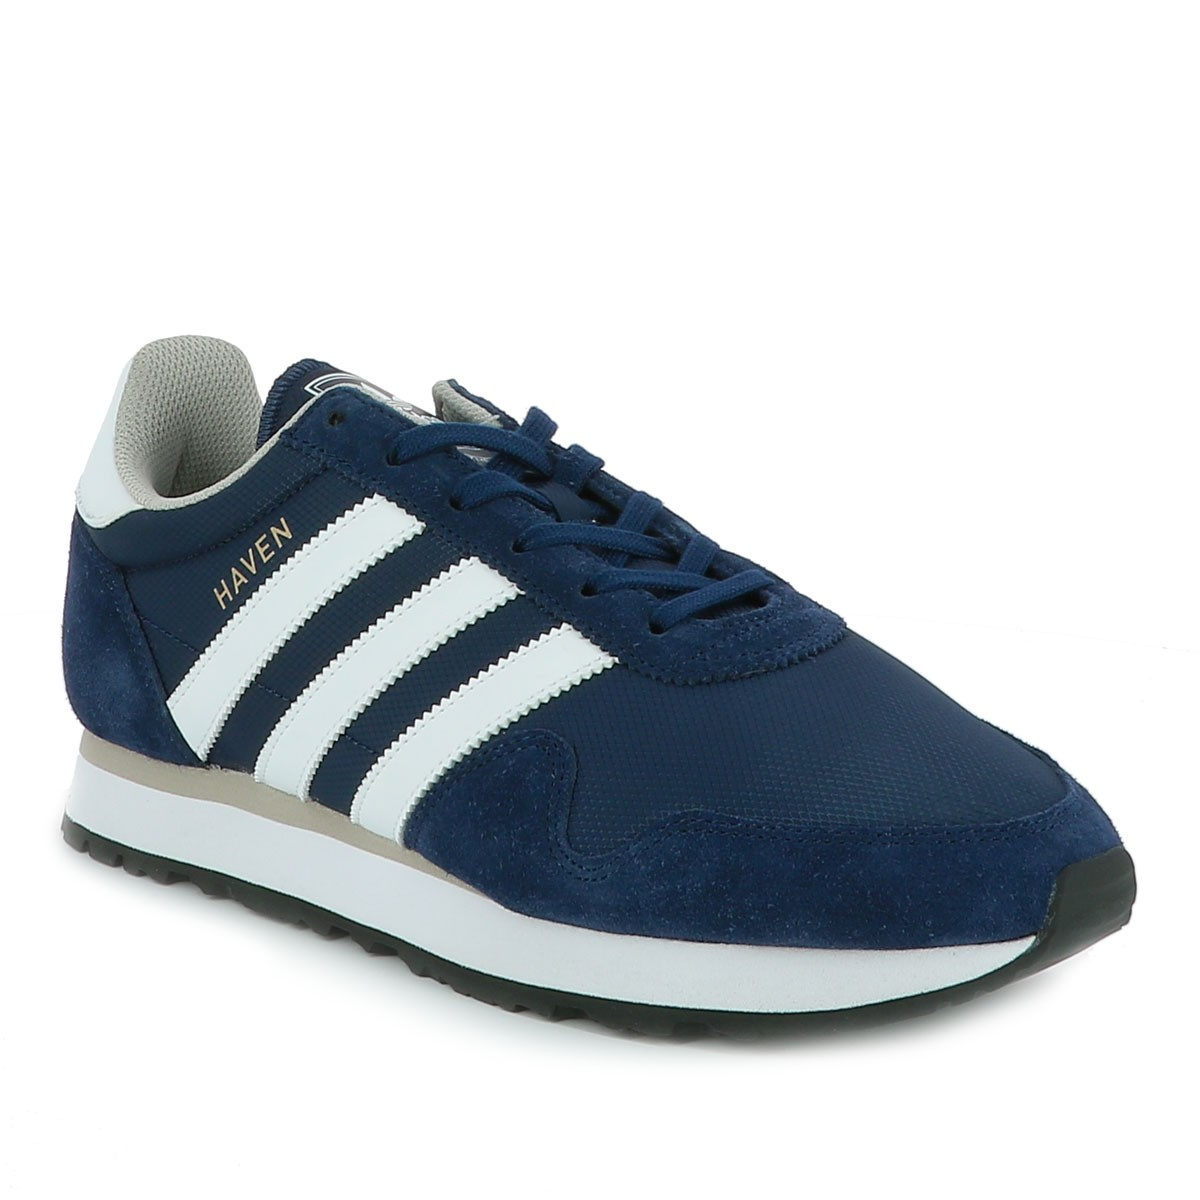 code promo 6e7bb 0b979 ADIDAS ORIGINALS Baskets Haven homme bleu